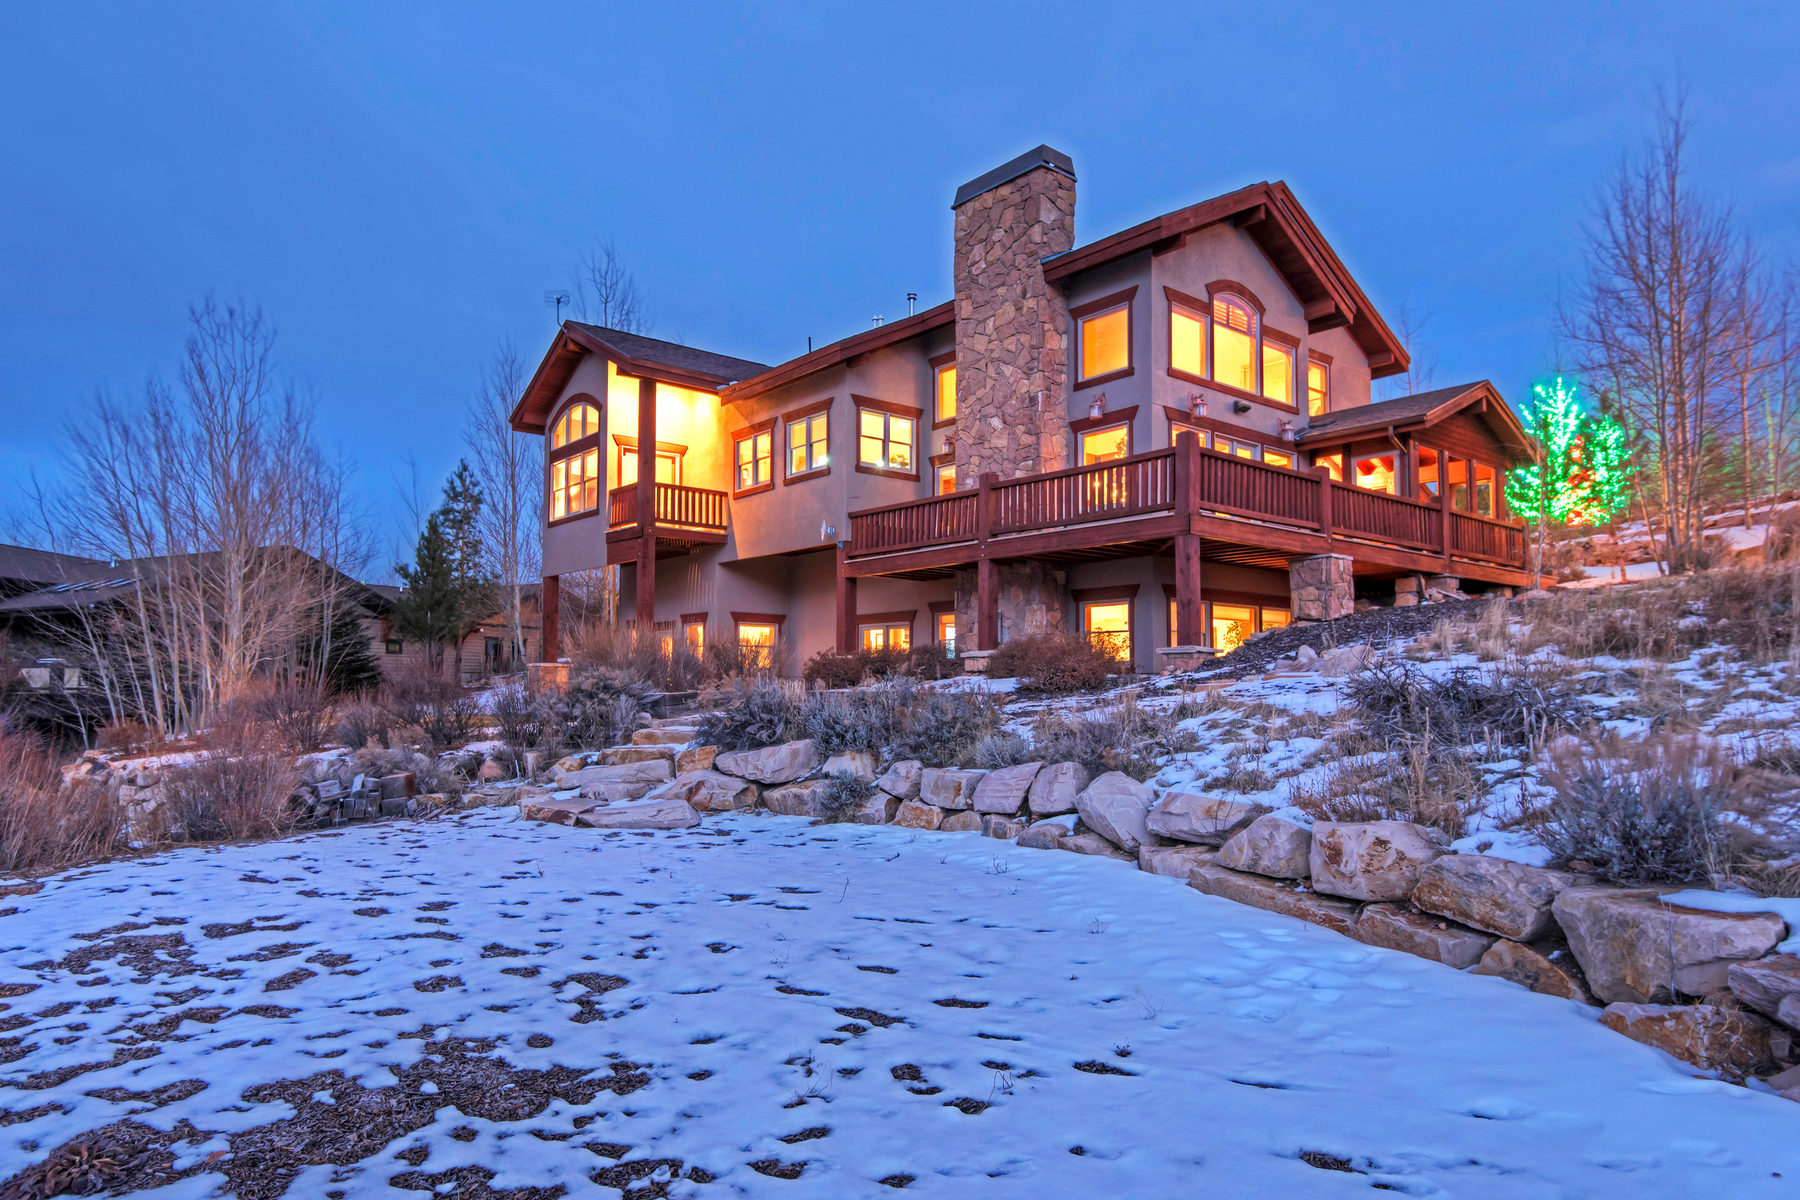 Property For Sale at Front-Row Ski Resort Views on Open Space